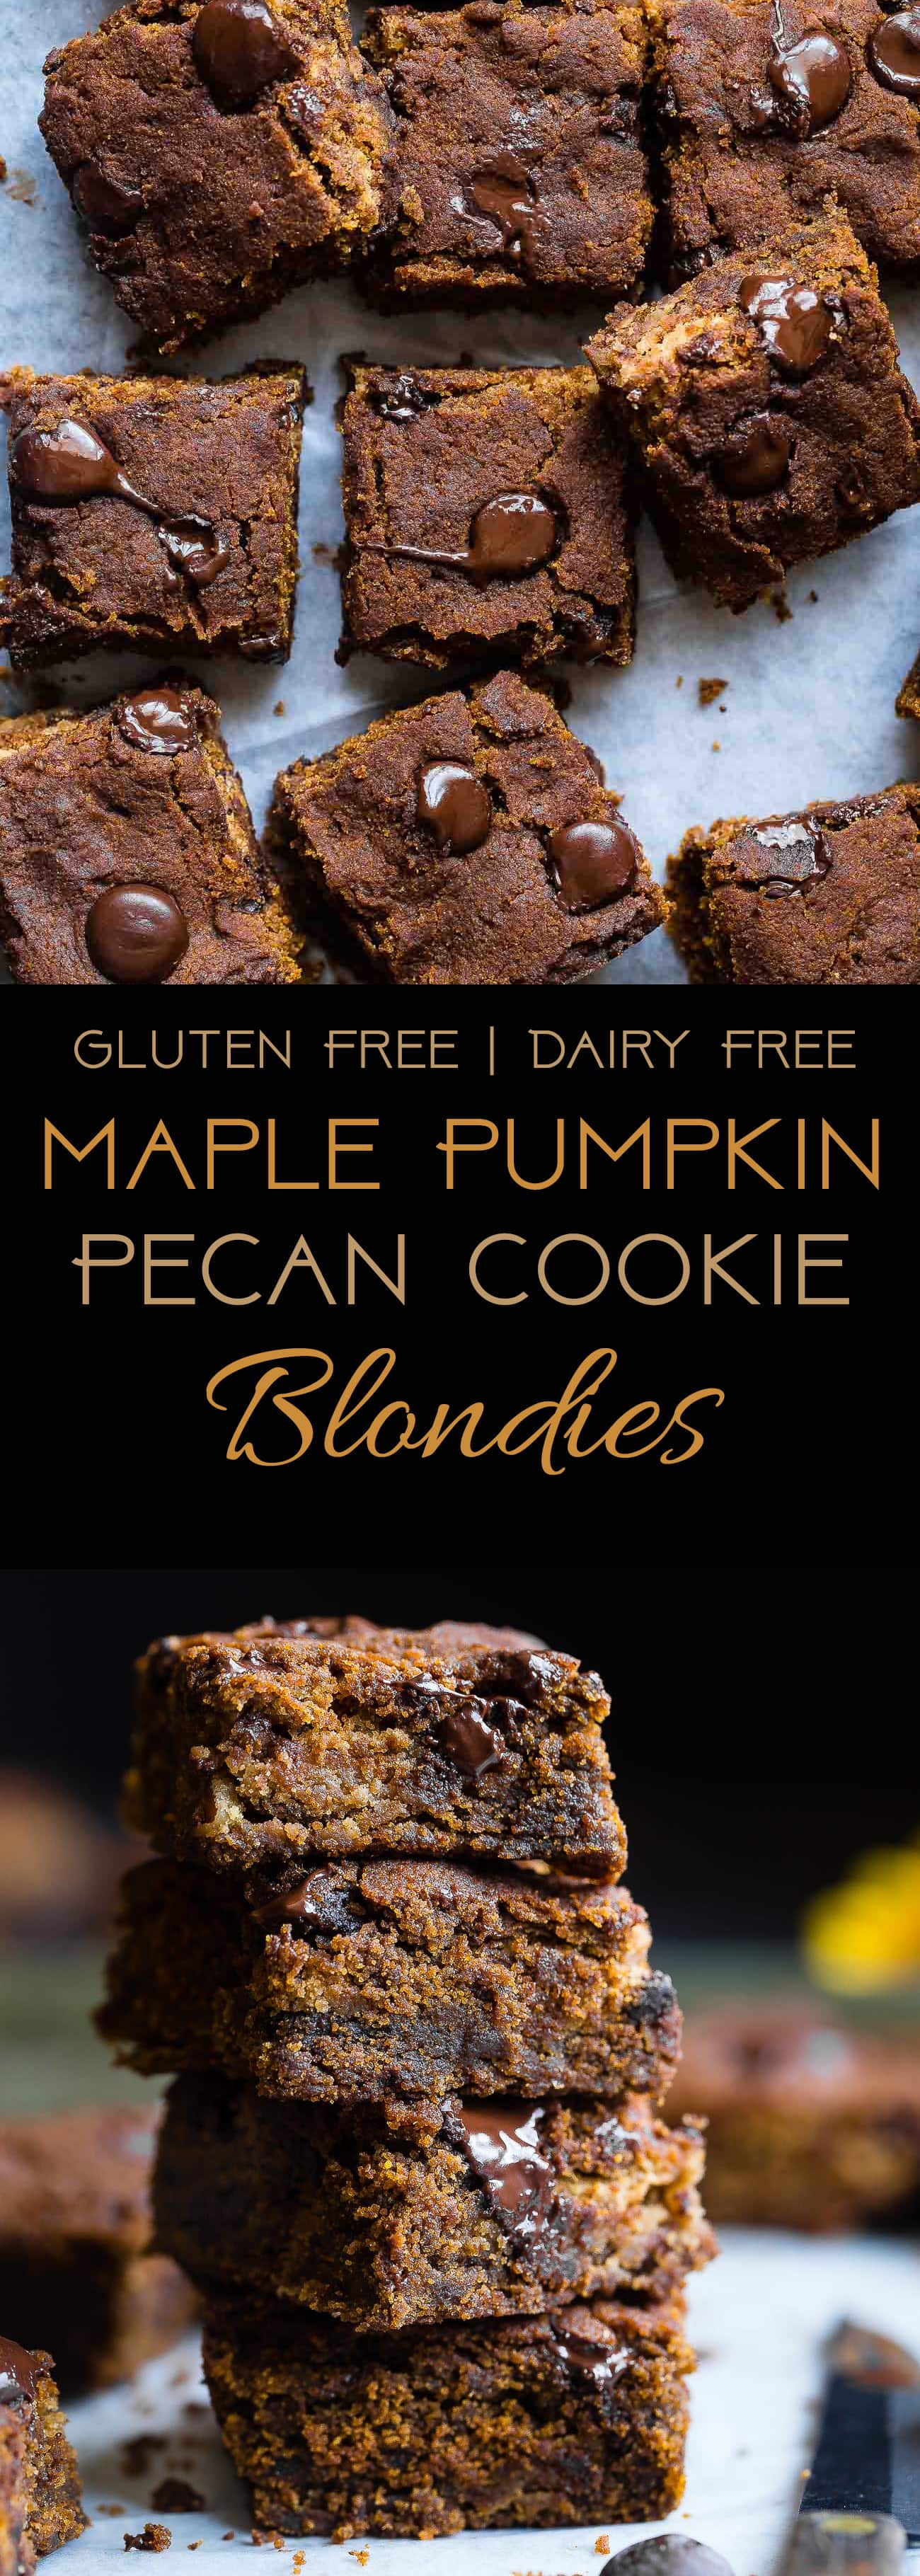 Cookie Stuffed Pumpkin Blondies - Cookies are baked right inside these healthier pumpkin brookies! They're so dense and chewy you'll never know they're gluten and dairy free! | Foodfaithfitness.com | @FoodFaithFit | Gluten Free Pumpkin Blondies. Easy Pumpkin Blondies. Chocolate Chip Pumpkin Blondies. Pumpkin Brownies. Healthy Pumpkin Brownies. Pumpkin Brownies Recipe. Easy Pumpkin Brownies. Pumpkin Brownies from Scratch. Gluten Free Pumpkin Brownies. Flourless Pumpkin Brownies.